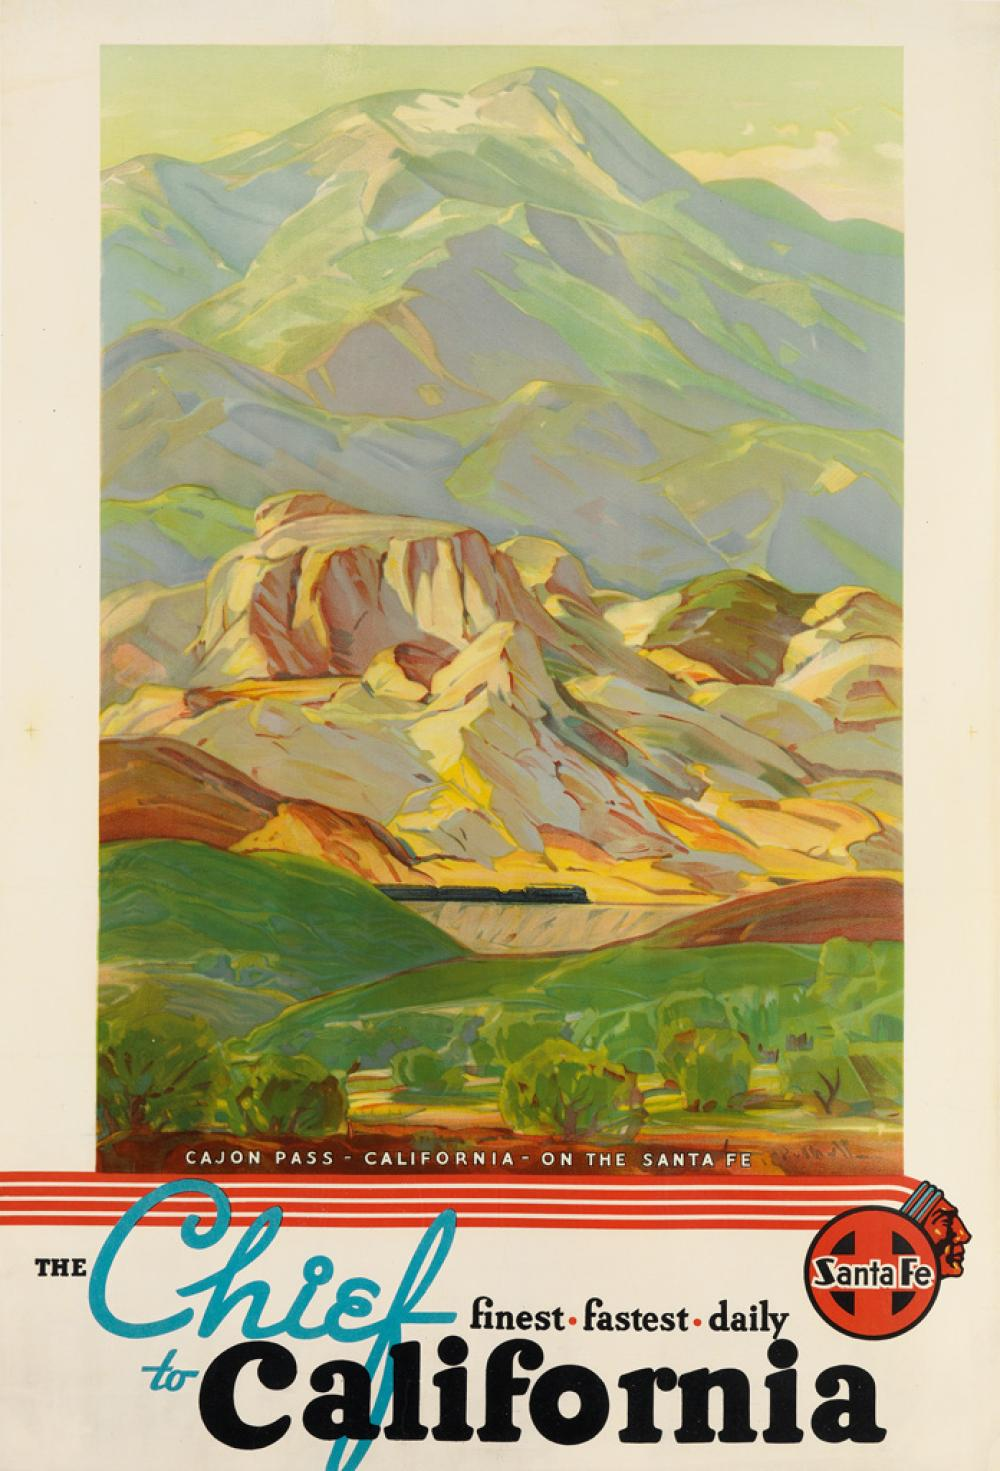 HANSON PUTHUFF (1875-1972). THE CHIEF TO CALIFORNIA / CAJON PASS. Circa 1936. 41x28 inches, 108x71 cm.